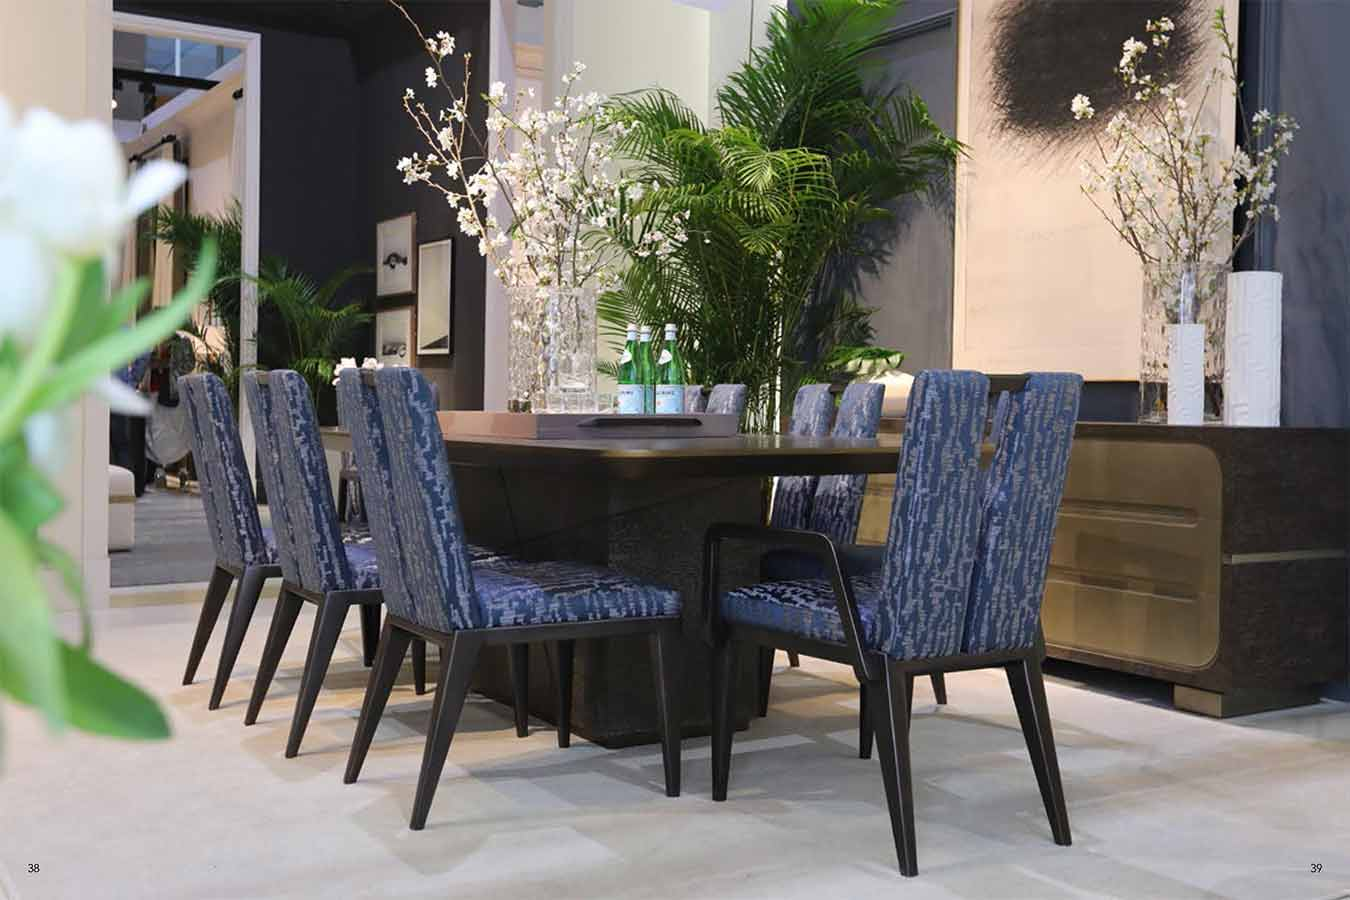 Xander Noori Dining Room | Contemporary Modern Luxury Exclusive Designer Handcrafted Furniture | Sandton Johannesburg